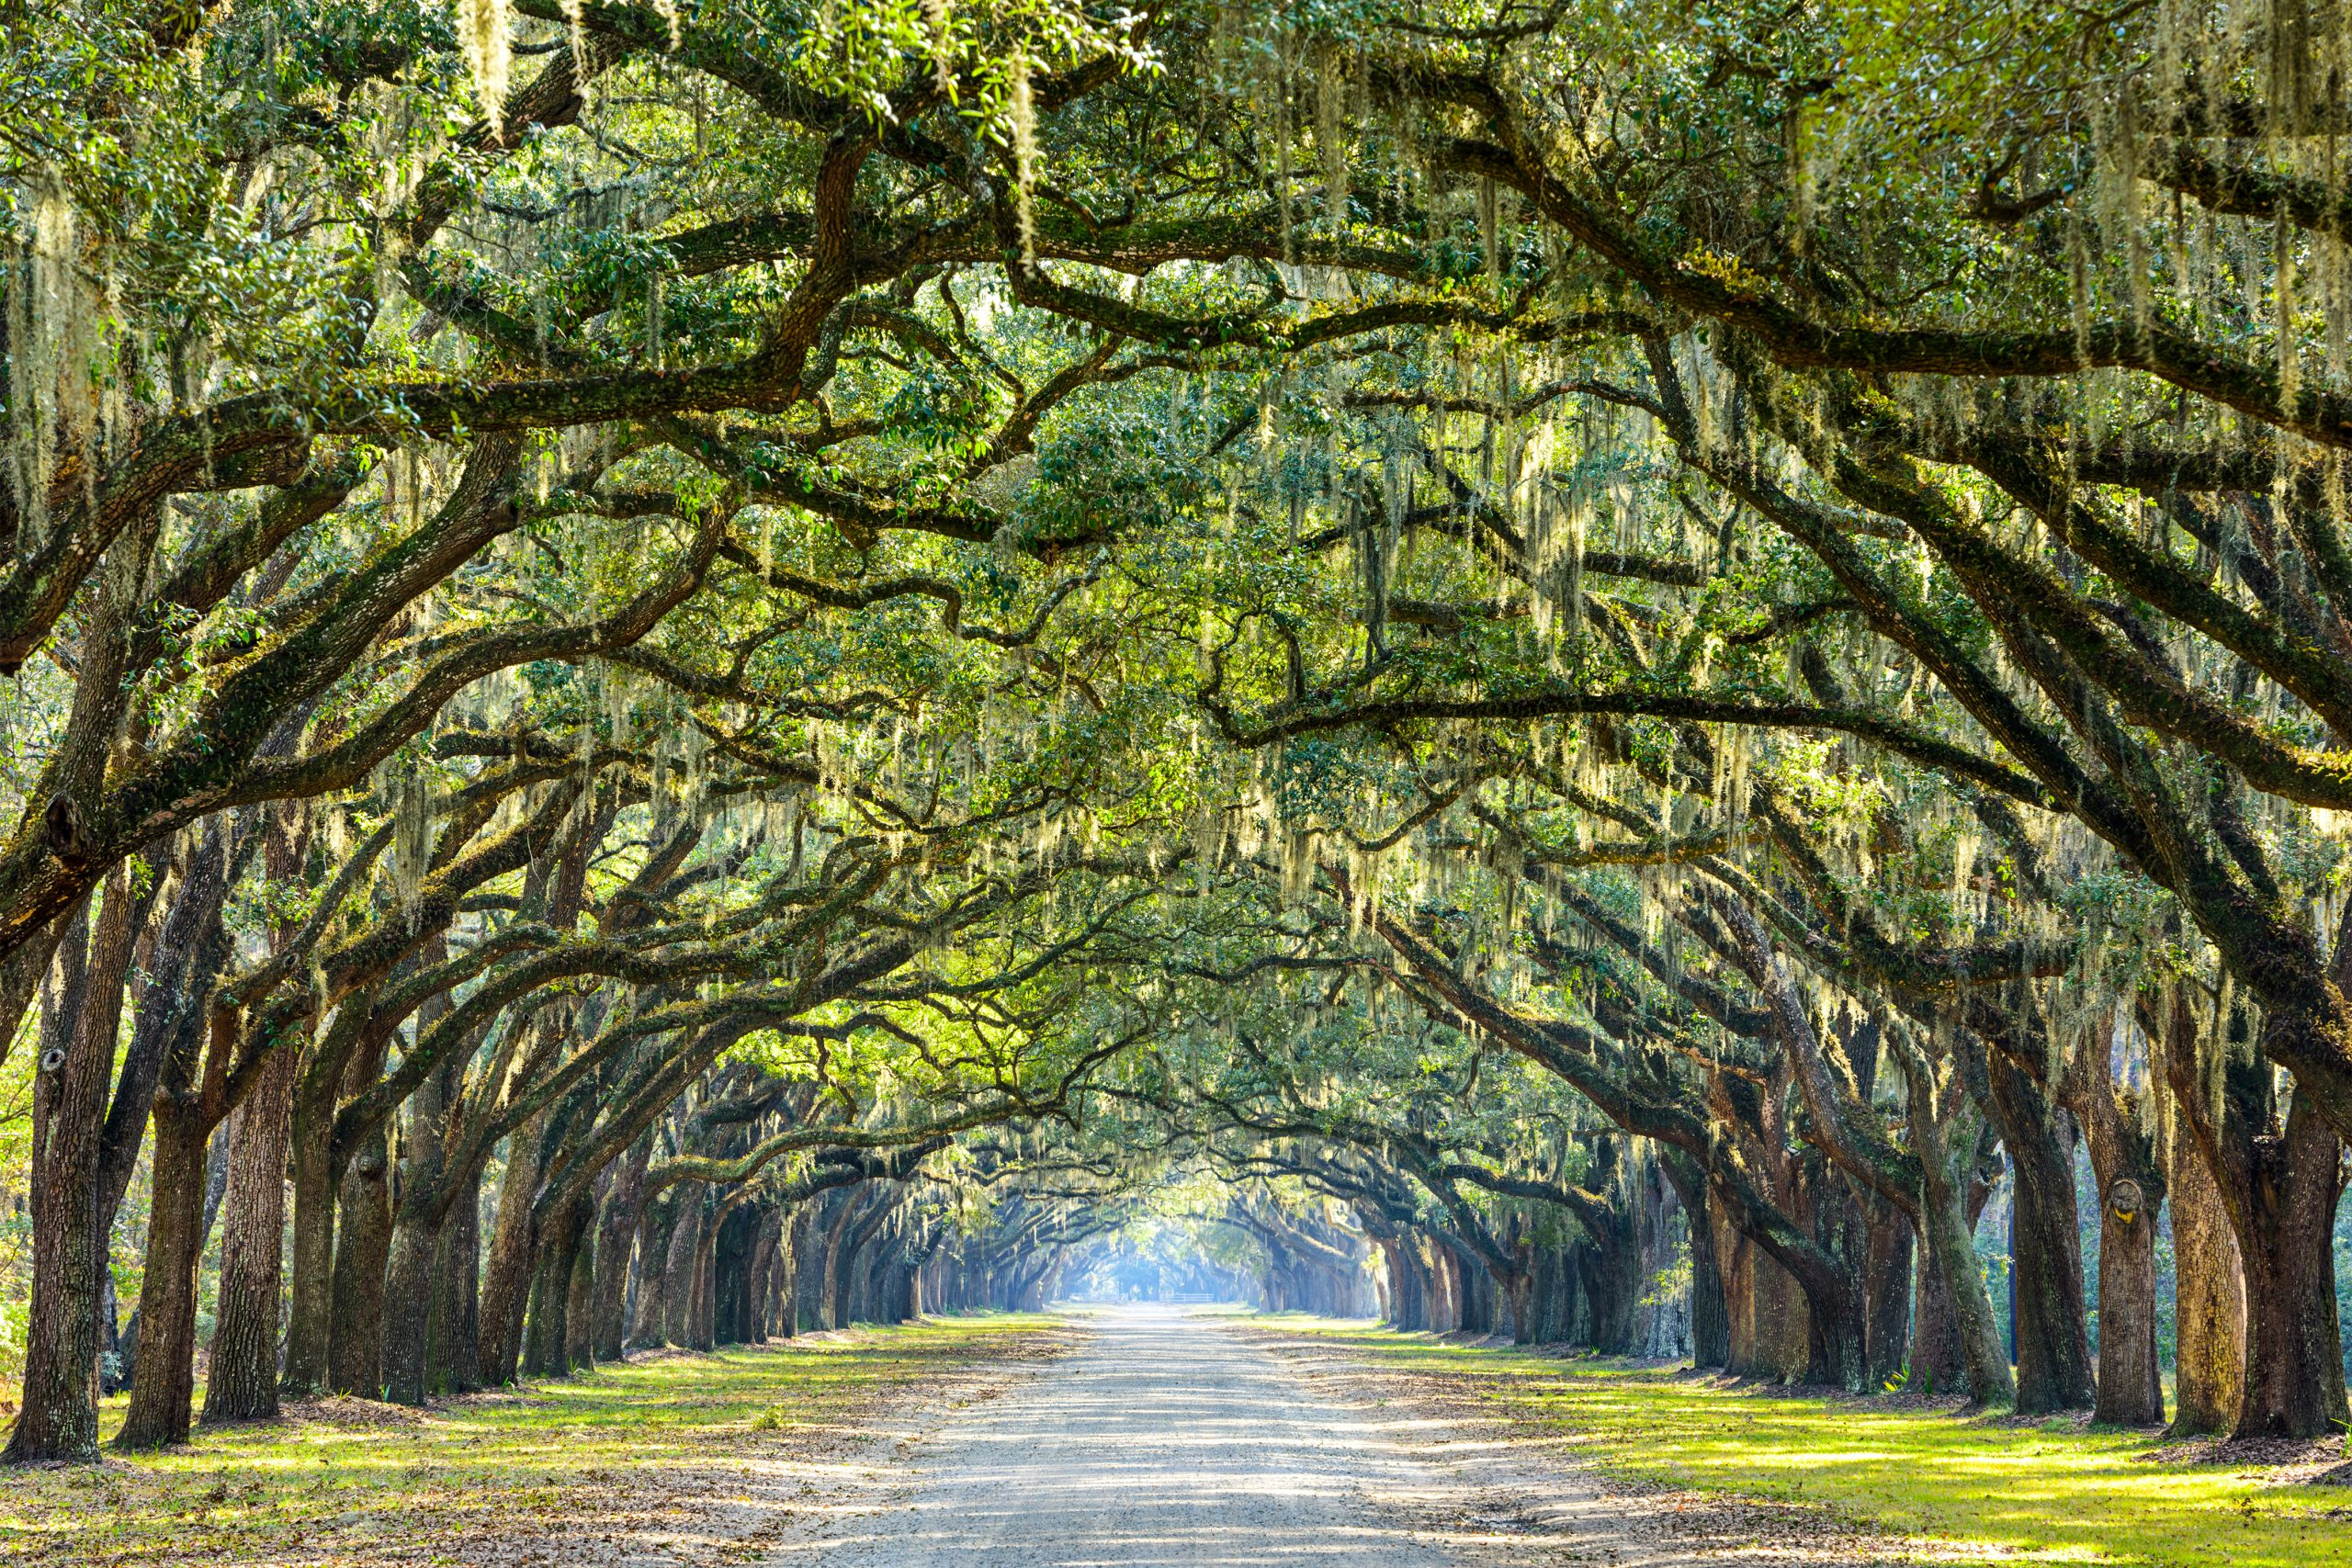 driveway into wormsloe plantation - things to do in savannah GA with kids